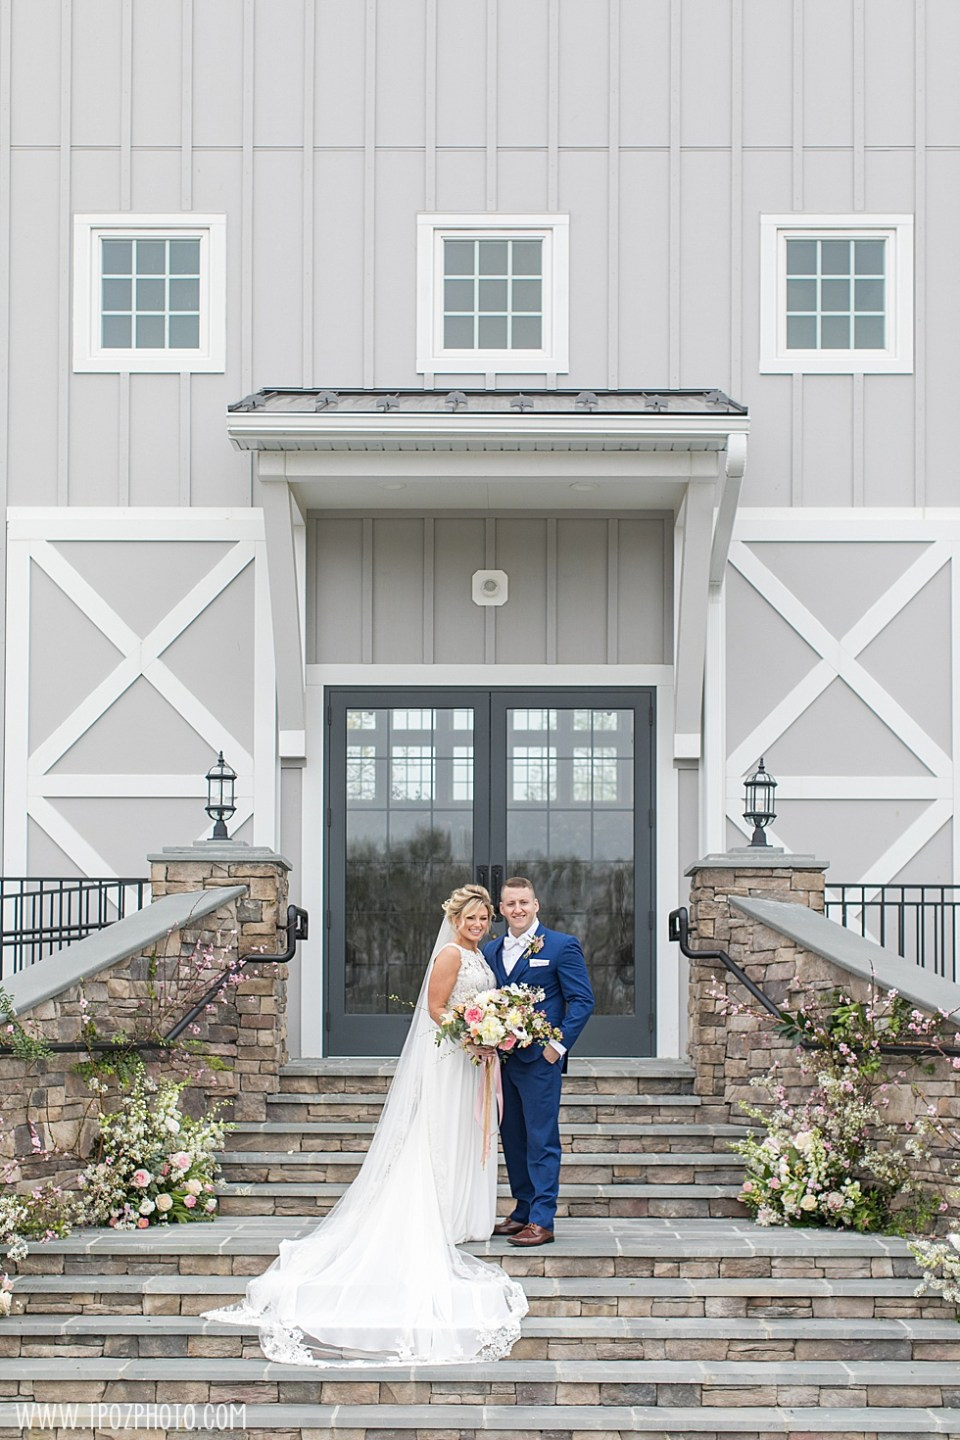 Rosewood Farms Rustic Barn Wedding  •  tPoz Photography  •  www.tpozphoto.com